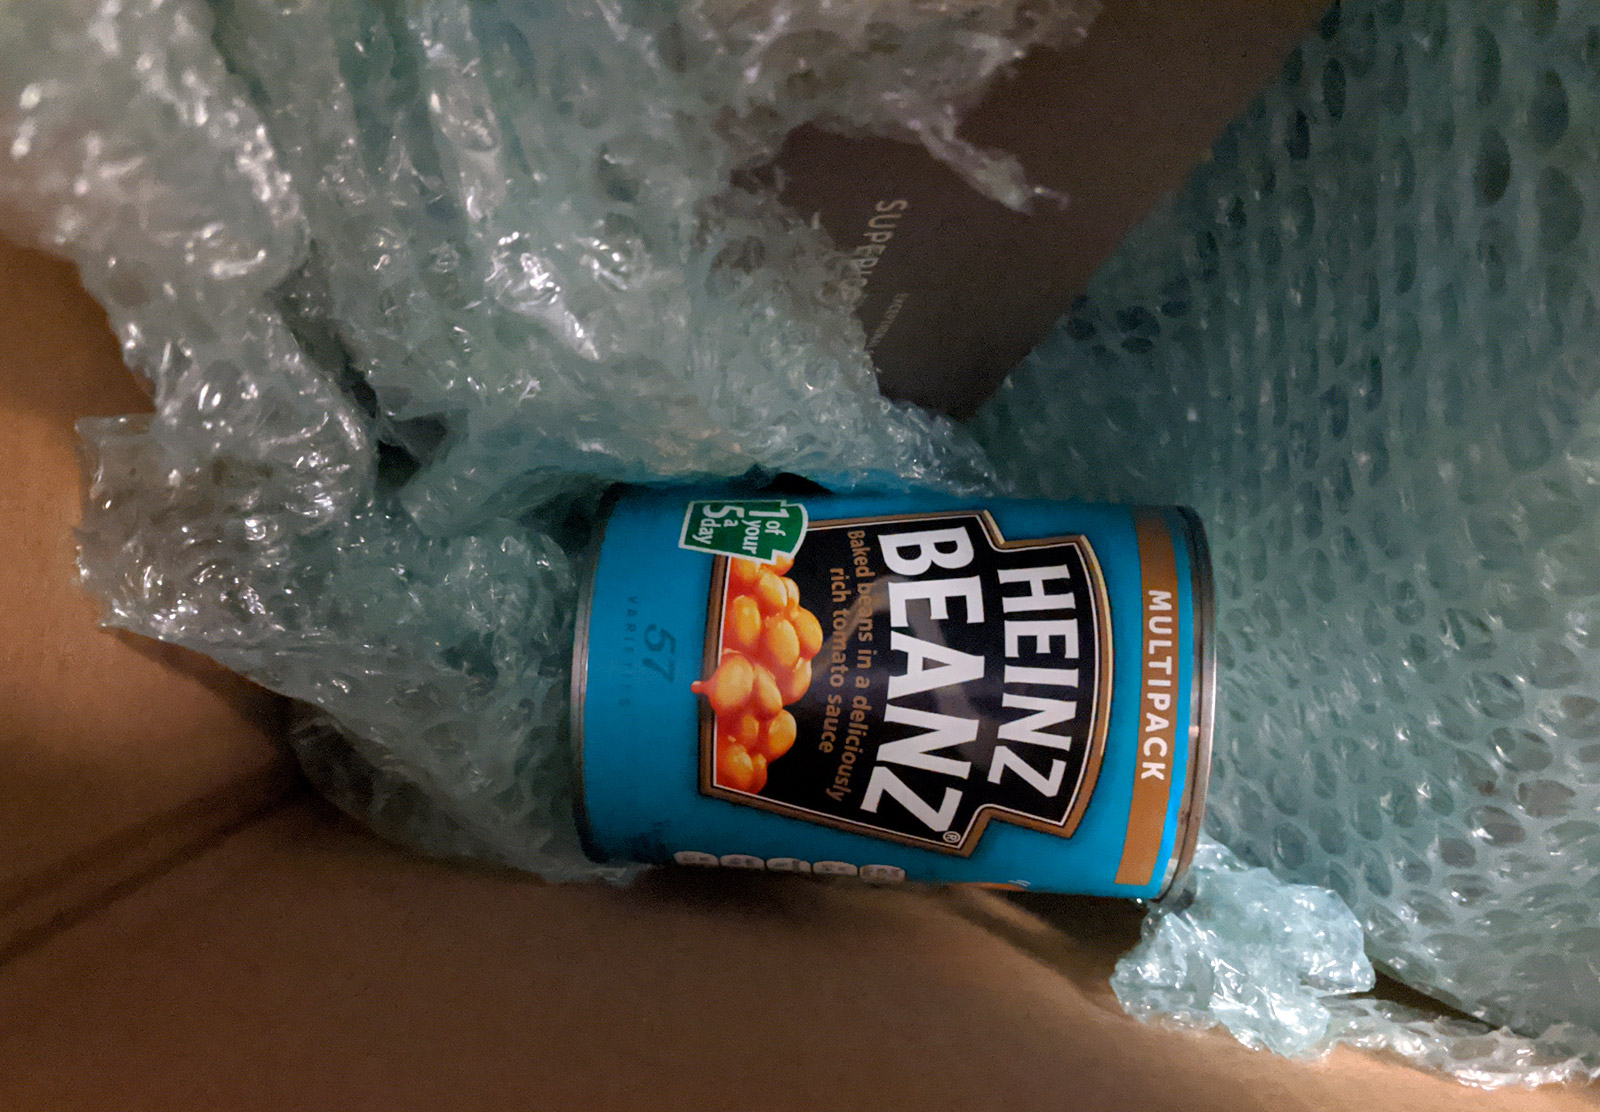 Baked beans in box